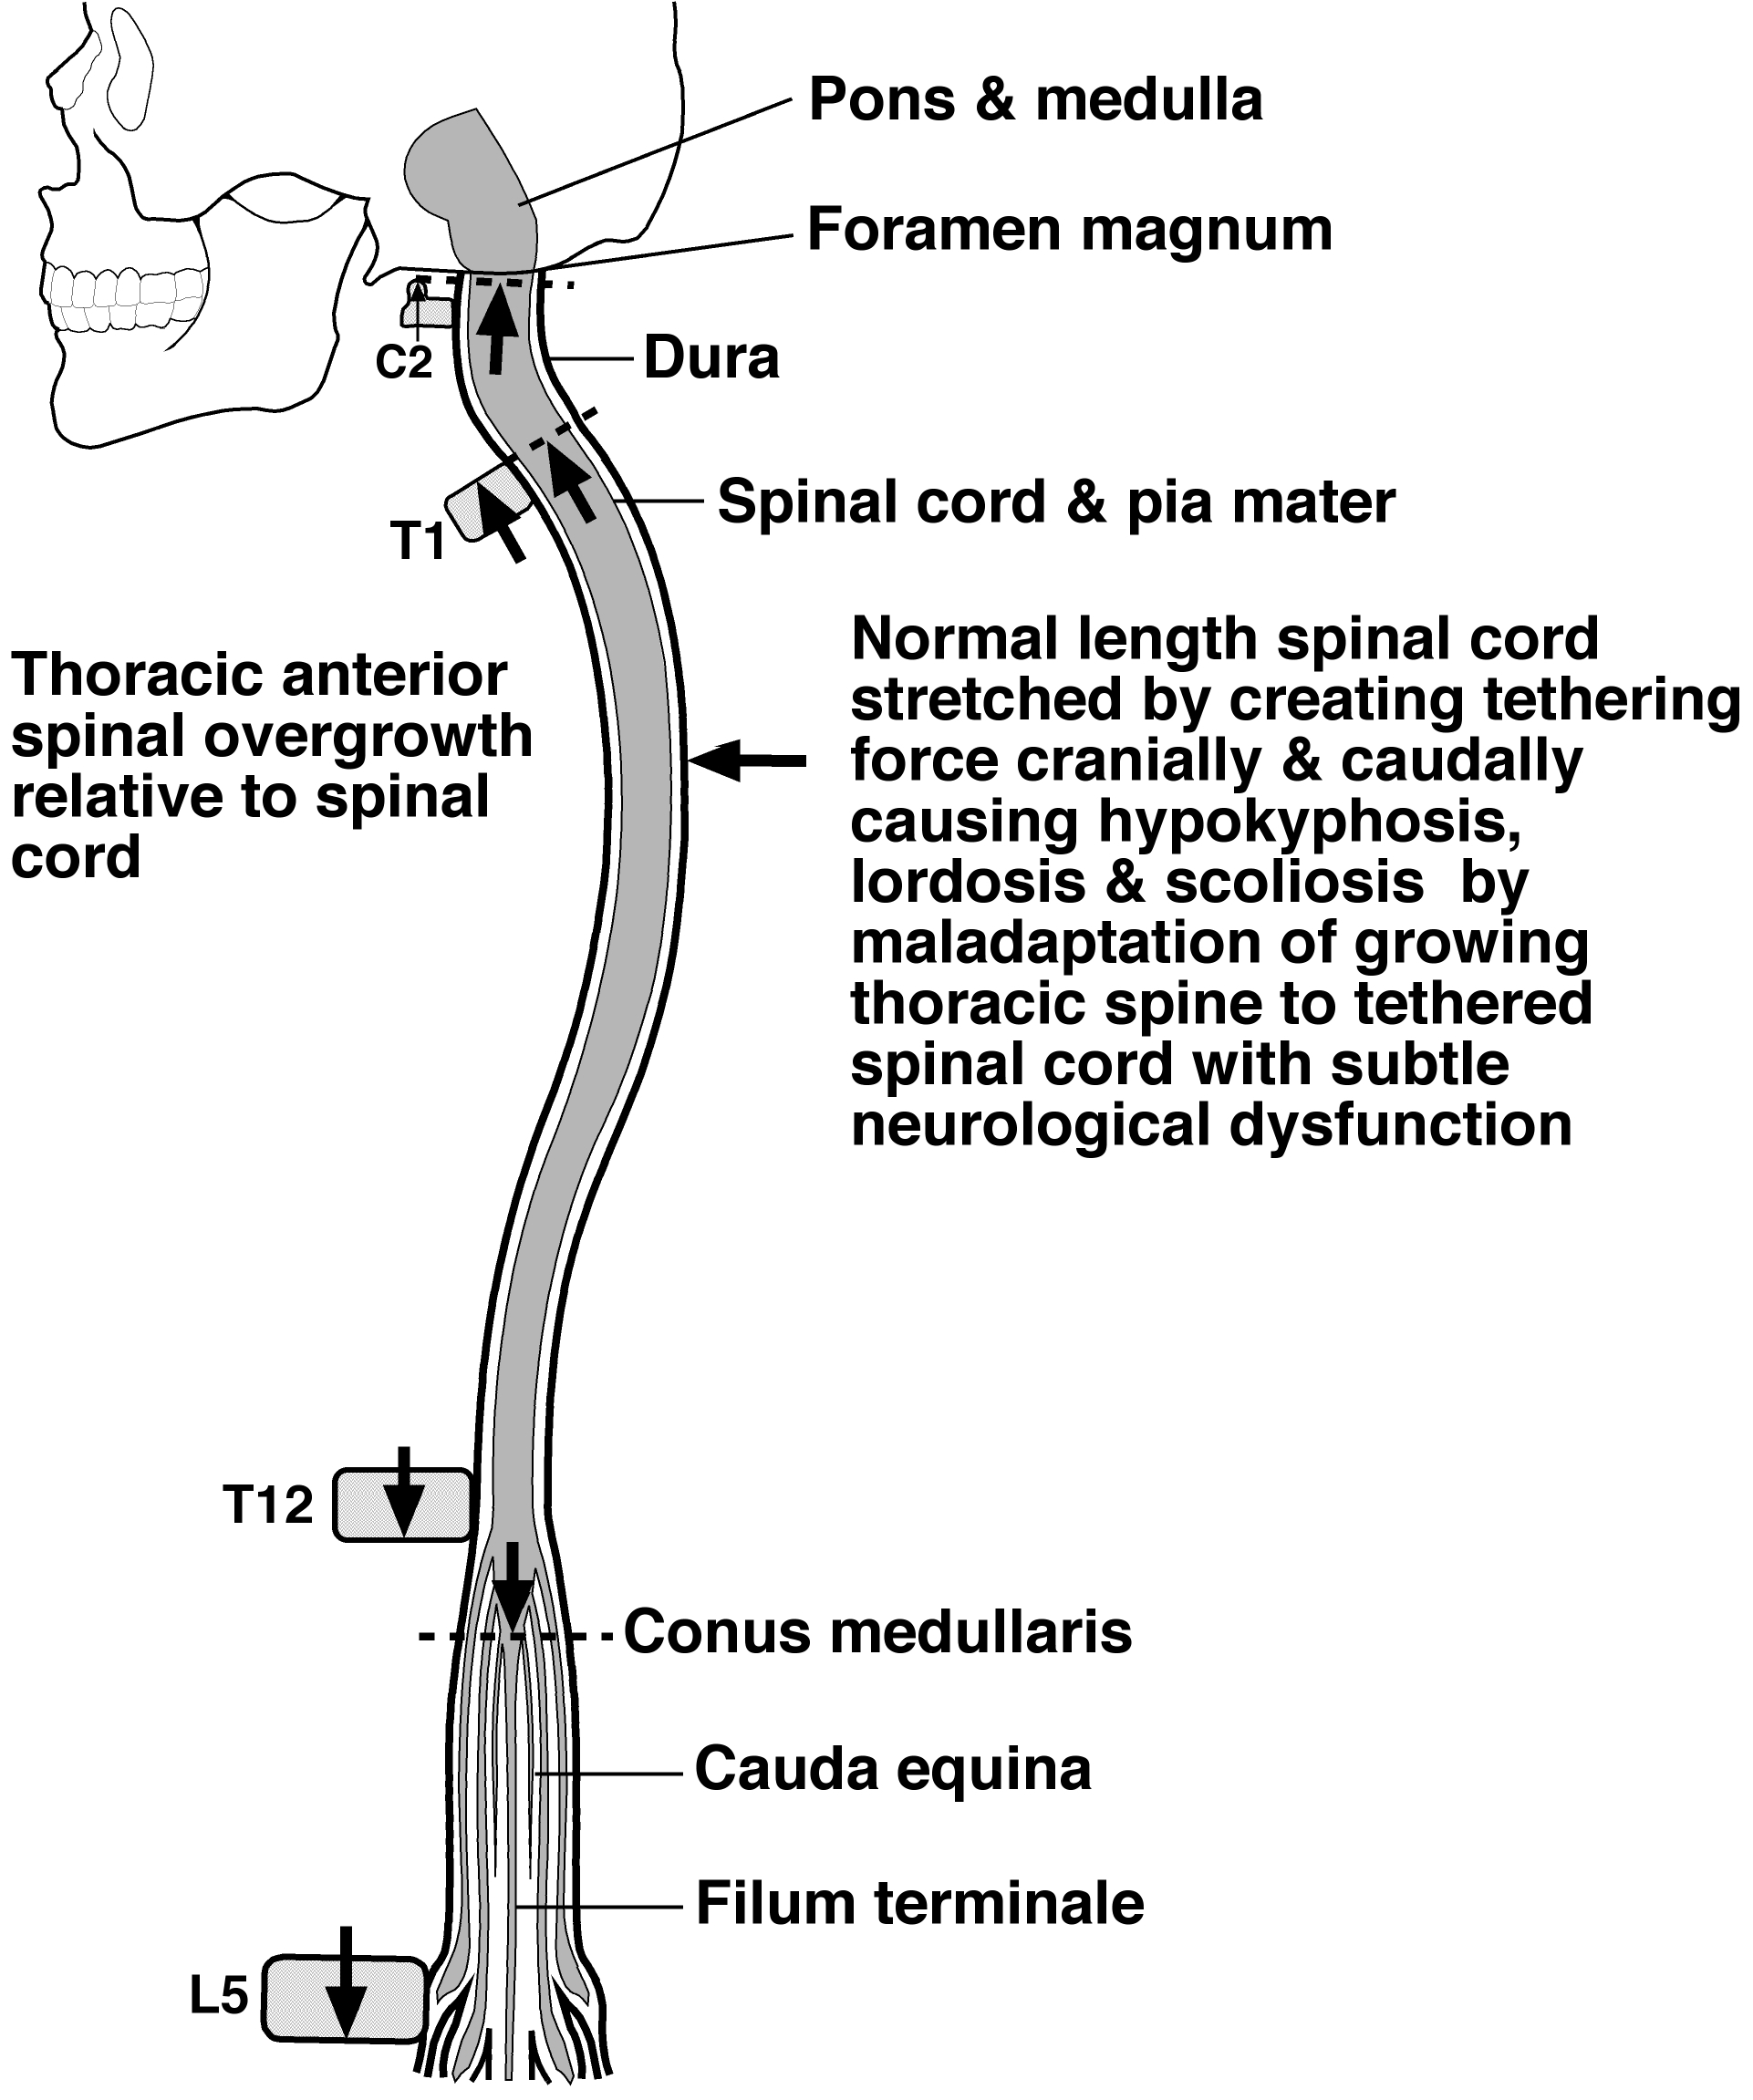 Relative shortening and functional tethering of spinal cord in 130132008110moesm1esmeg pooptronica